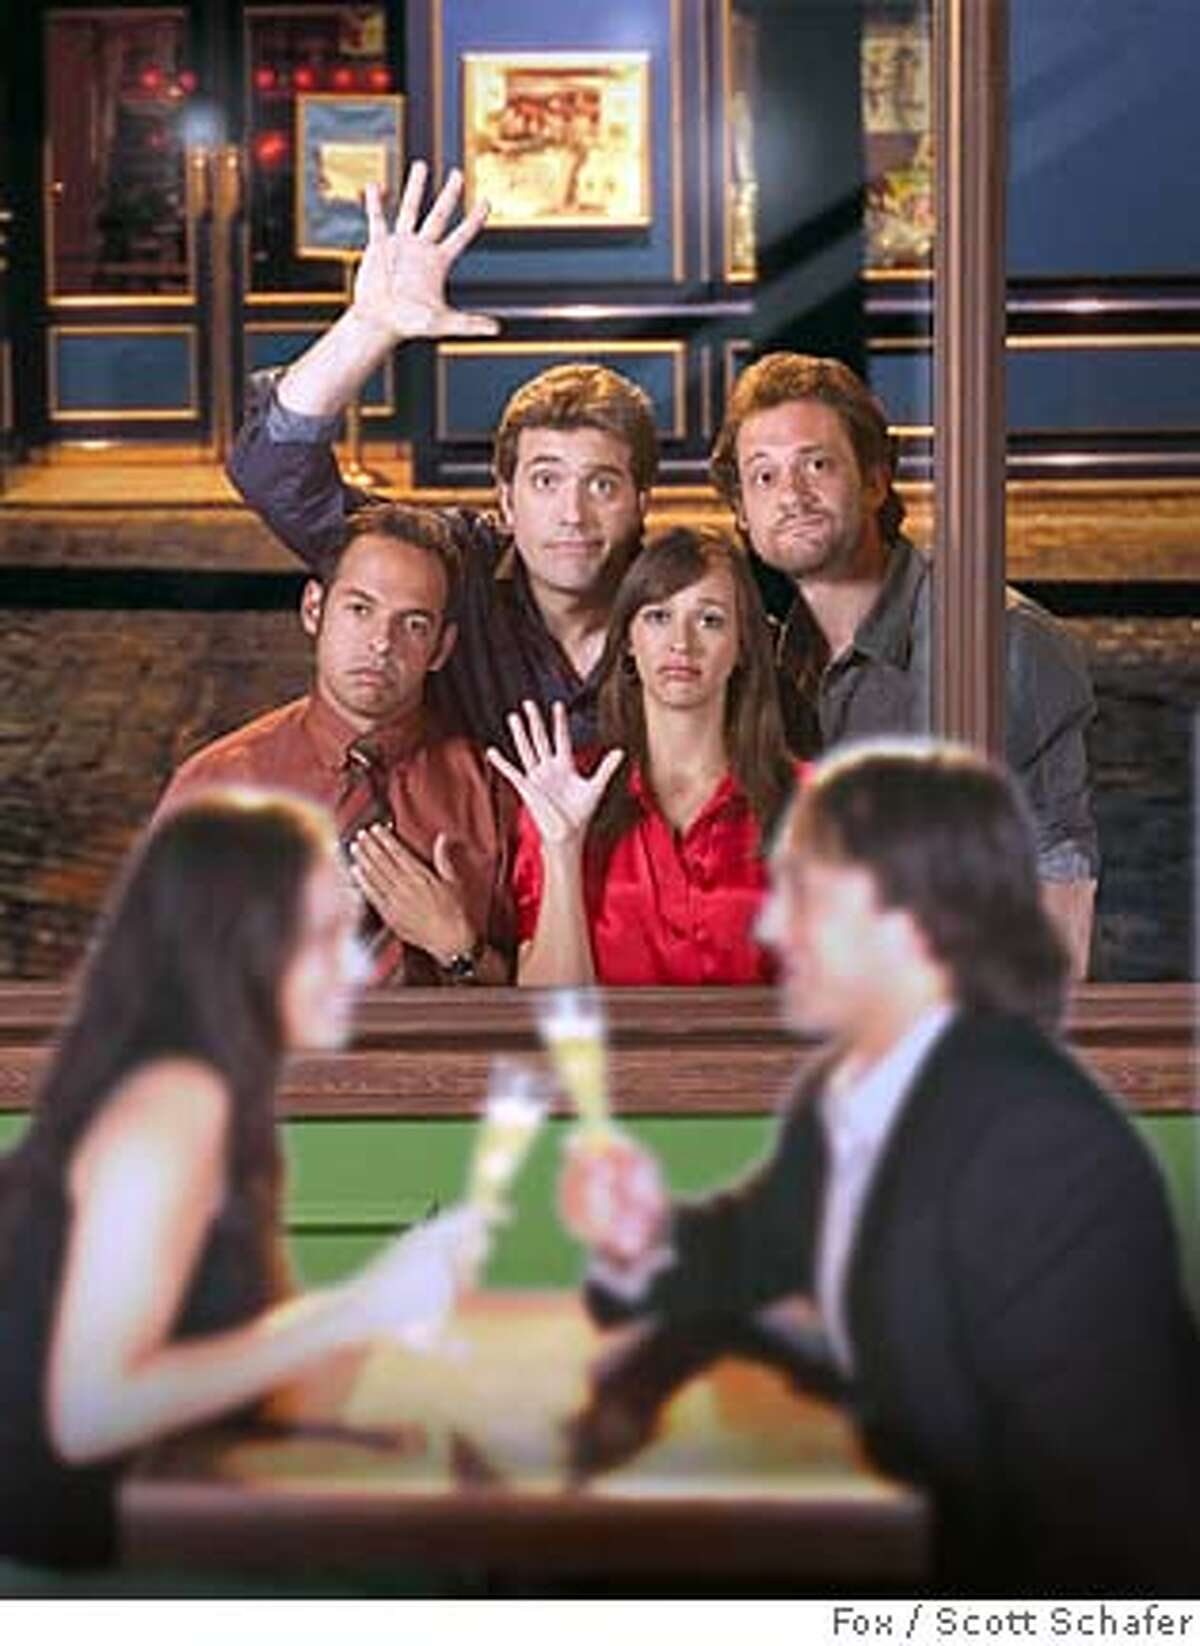 UNHITCHED: Four unattached friends who are looking to get married, must navigate the tricky waters of dating in their 30s in the new comedy executive-produced by the Farrelly Brothers UNHITCHED premiering Sunday, March 2 (9:30-10:00 PM ET/PT) on FOX. Pictured clockwise from L: Shaun Majumder, Johnny Sneed, Craig Bierko and Rashida Jones. Cr: Scott Schafer/FOX